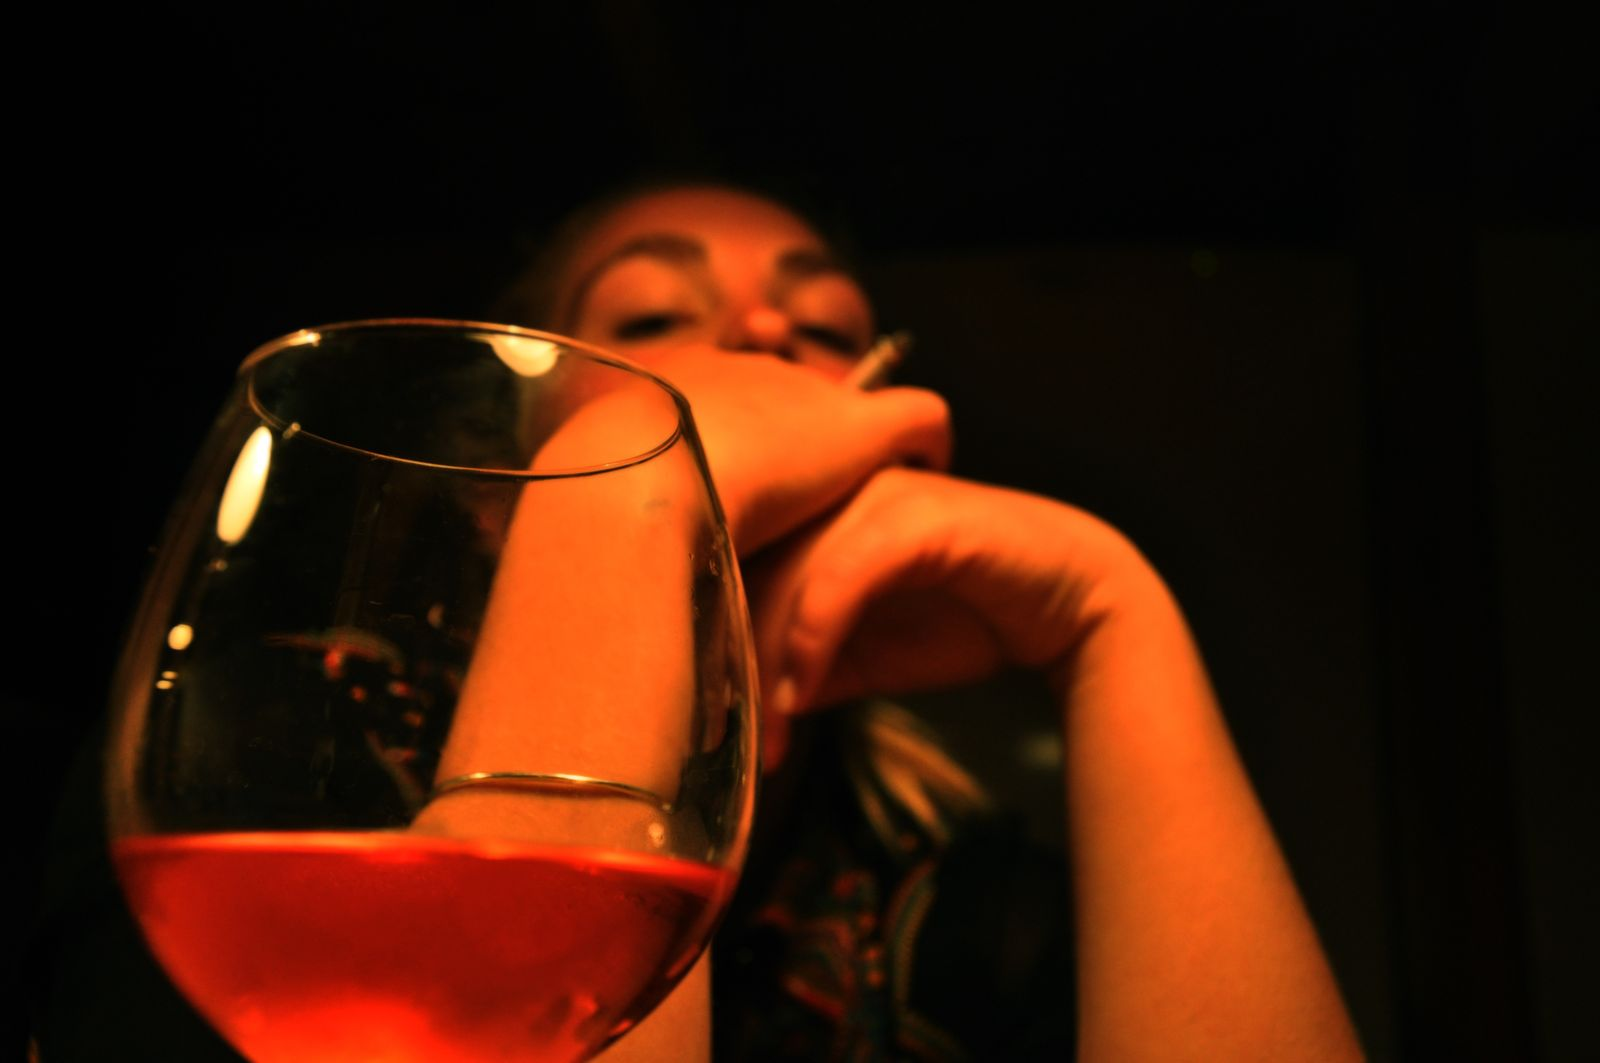 Close-Up Of Wineglass By Woman Smoking Against Black Background